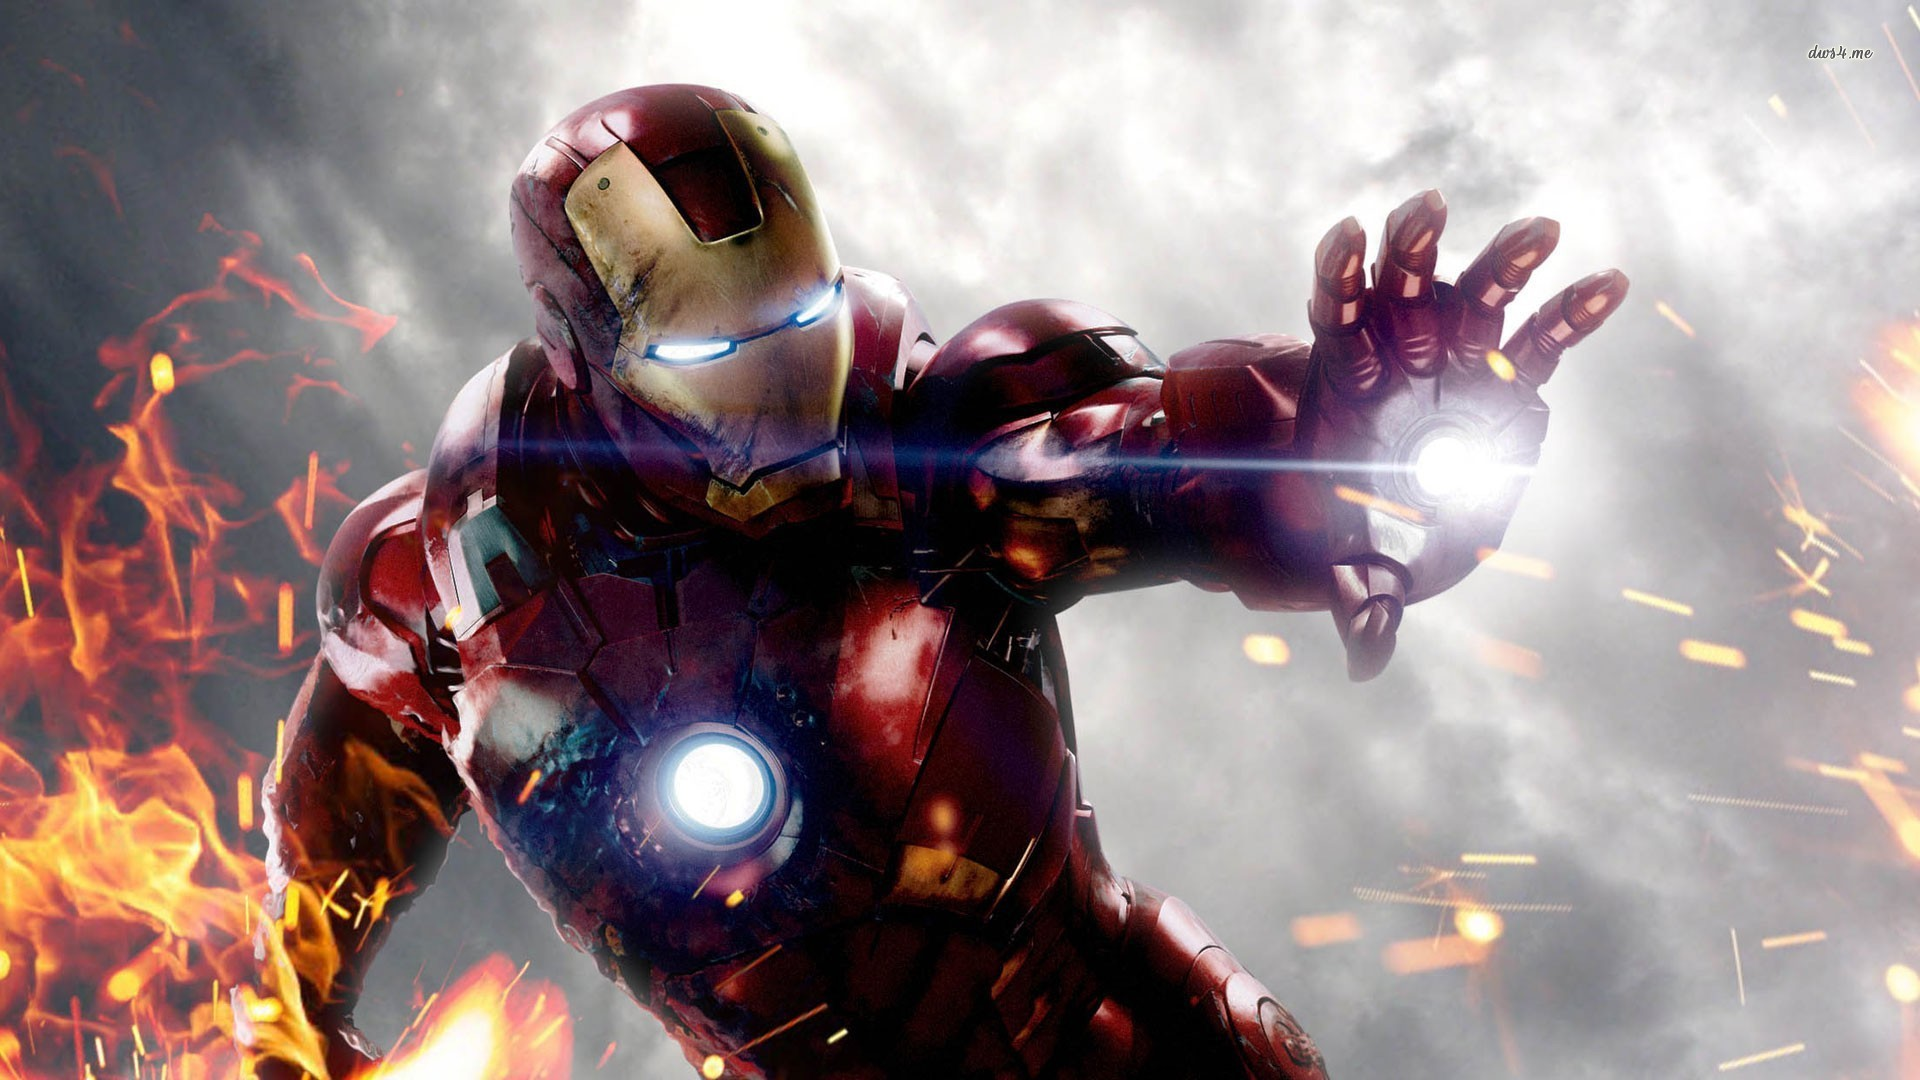 iron man wallpapers images photos pictures backgrounds